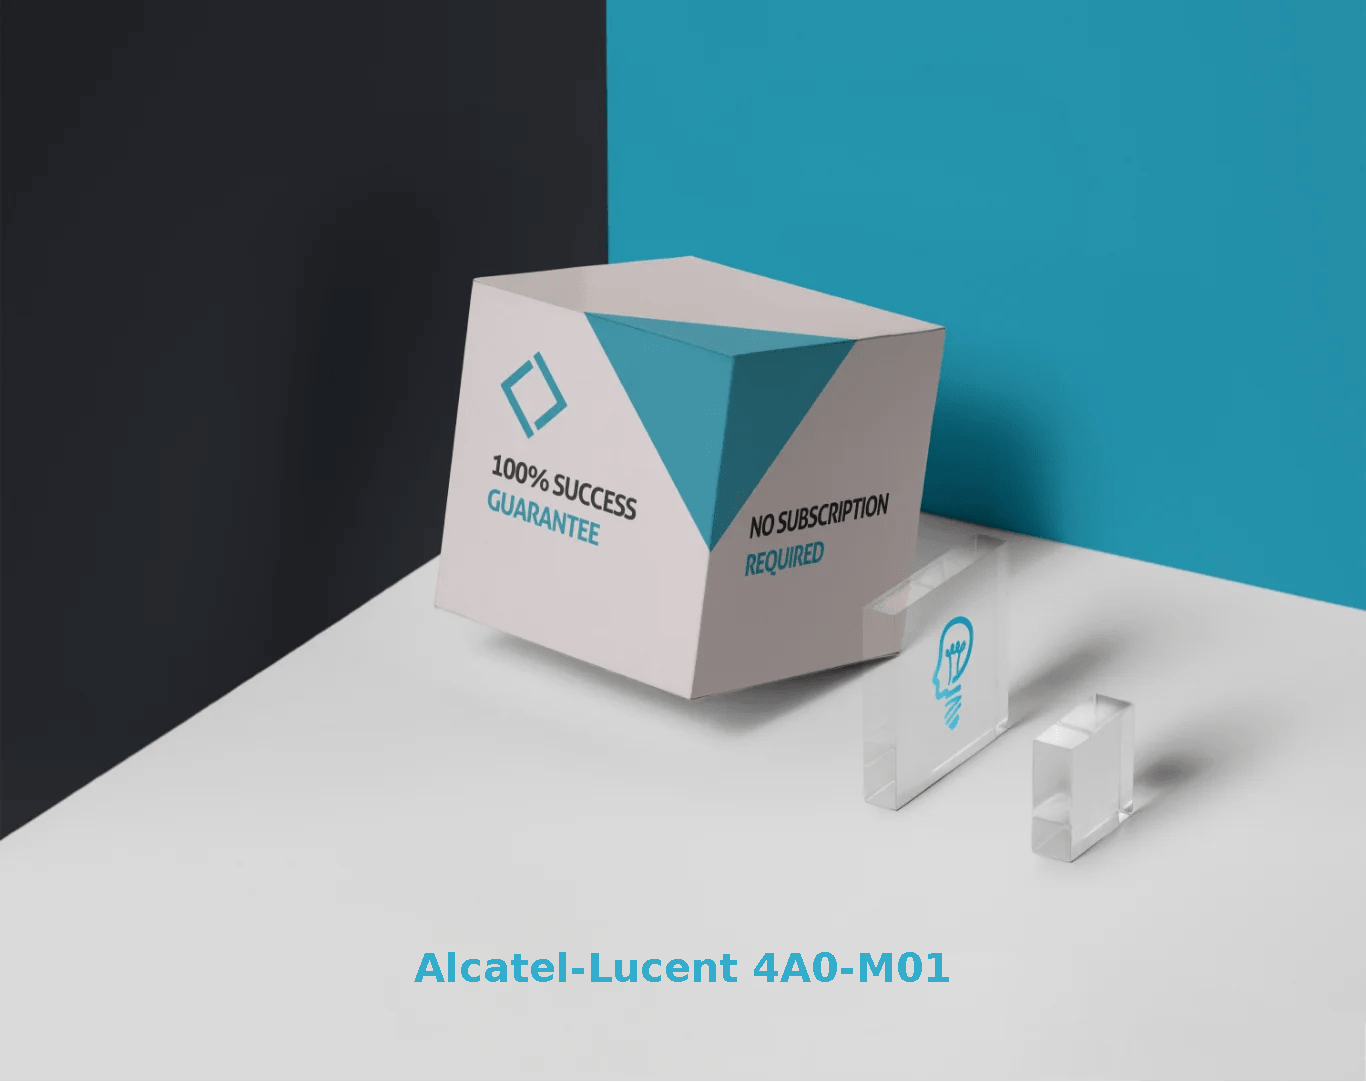 Alcatel-Lucent 4A0-M01 Exams